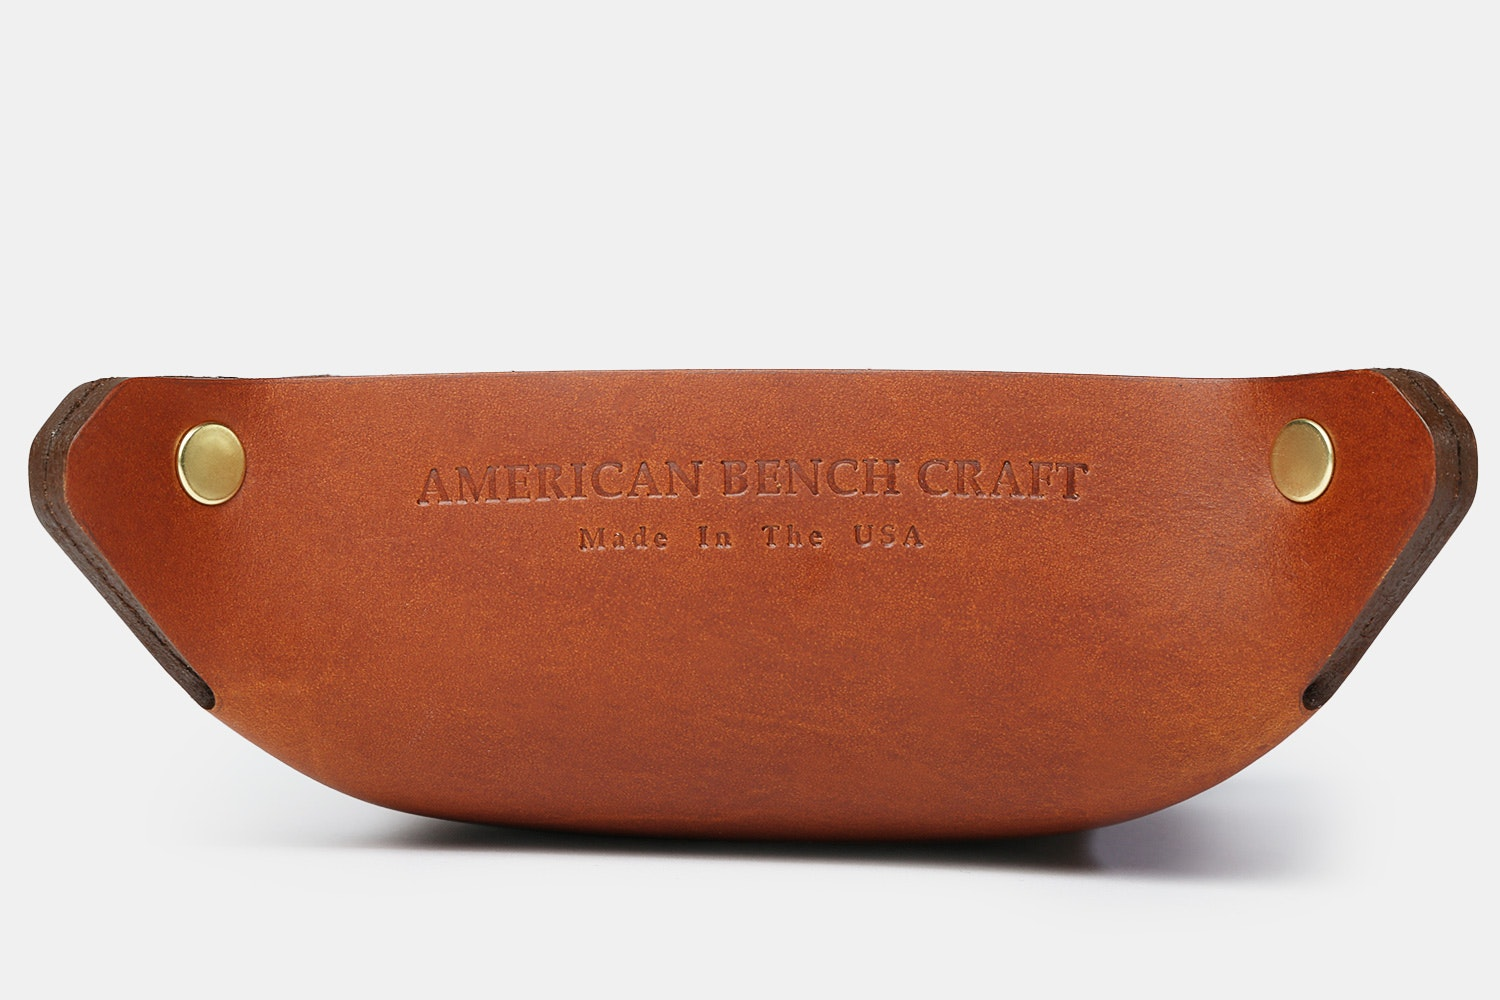 American Bench Craft Catchall Valet Tray